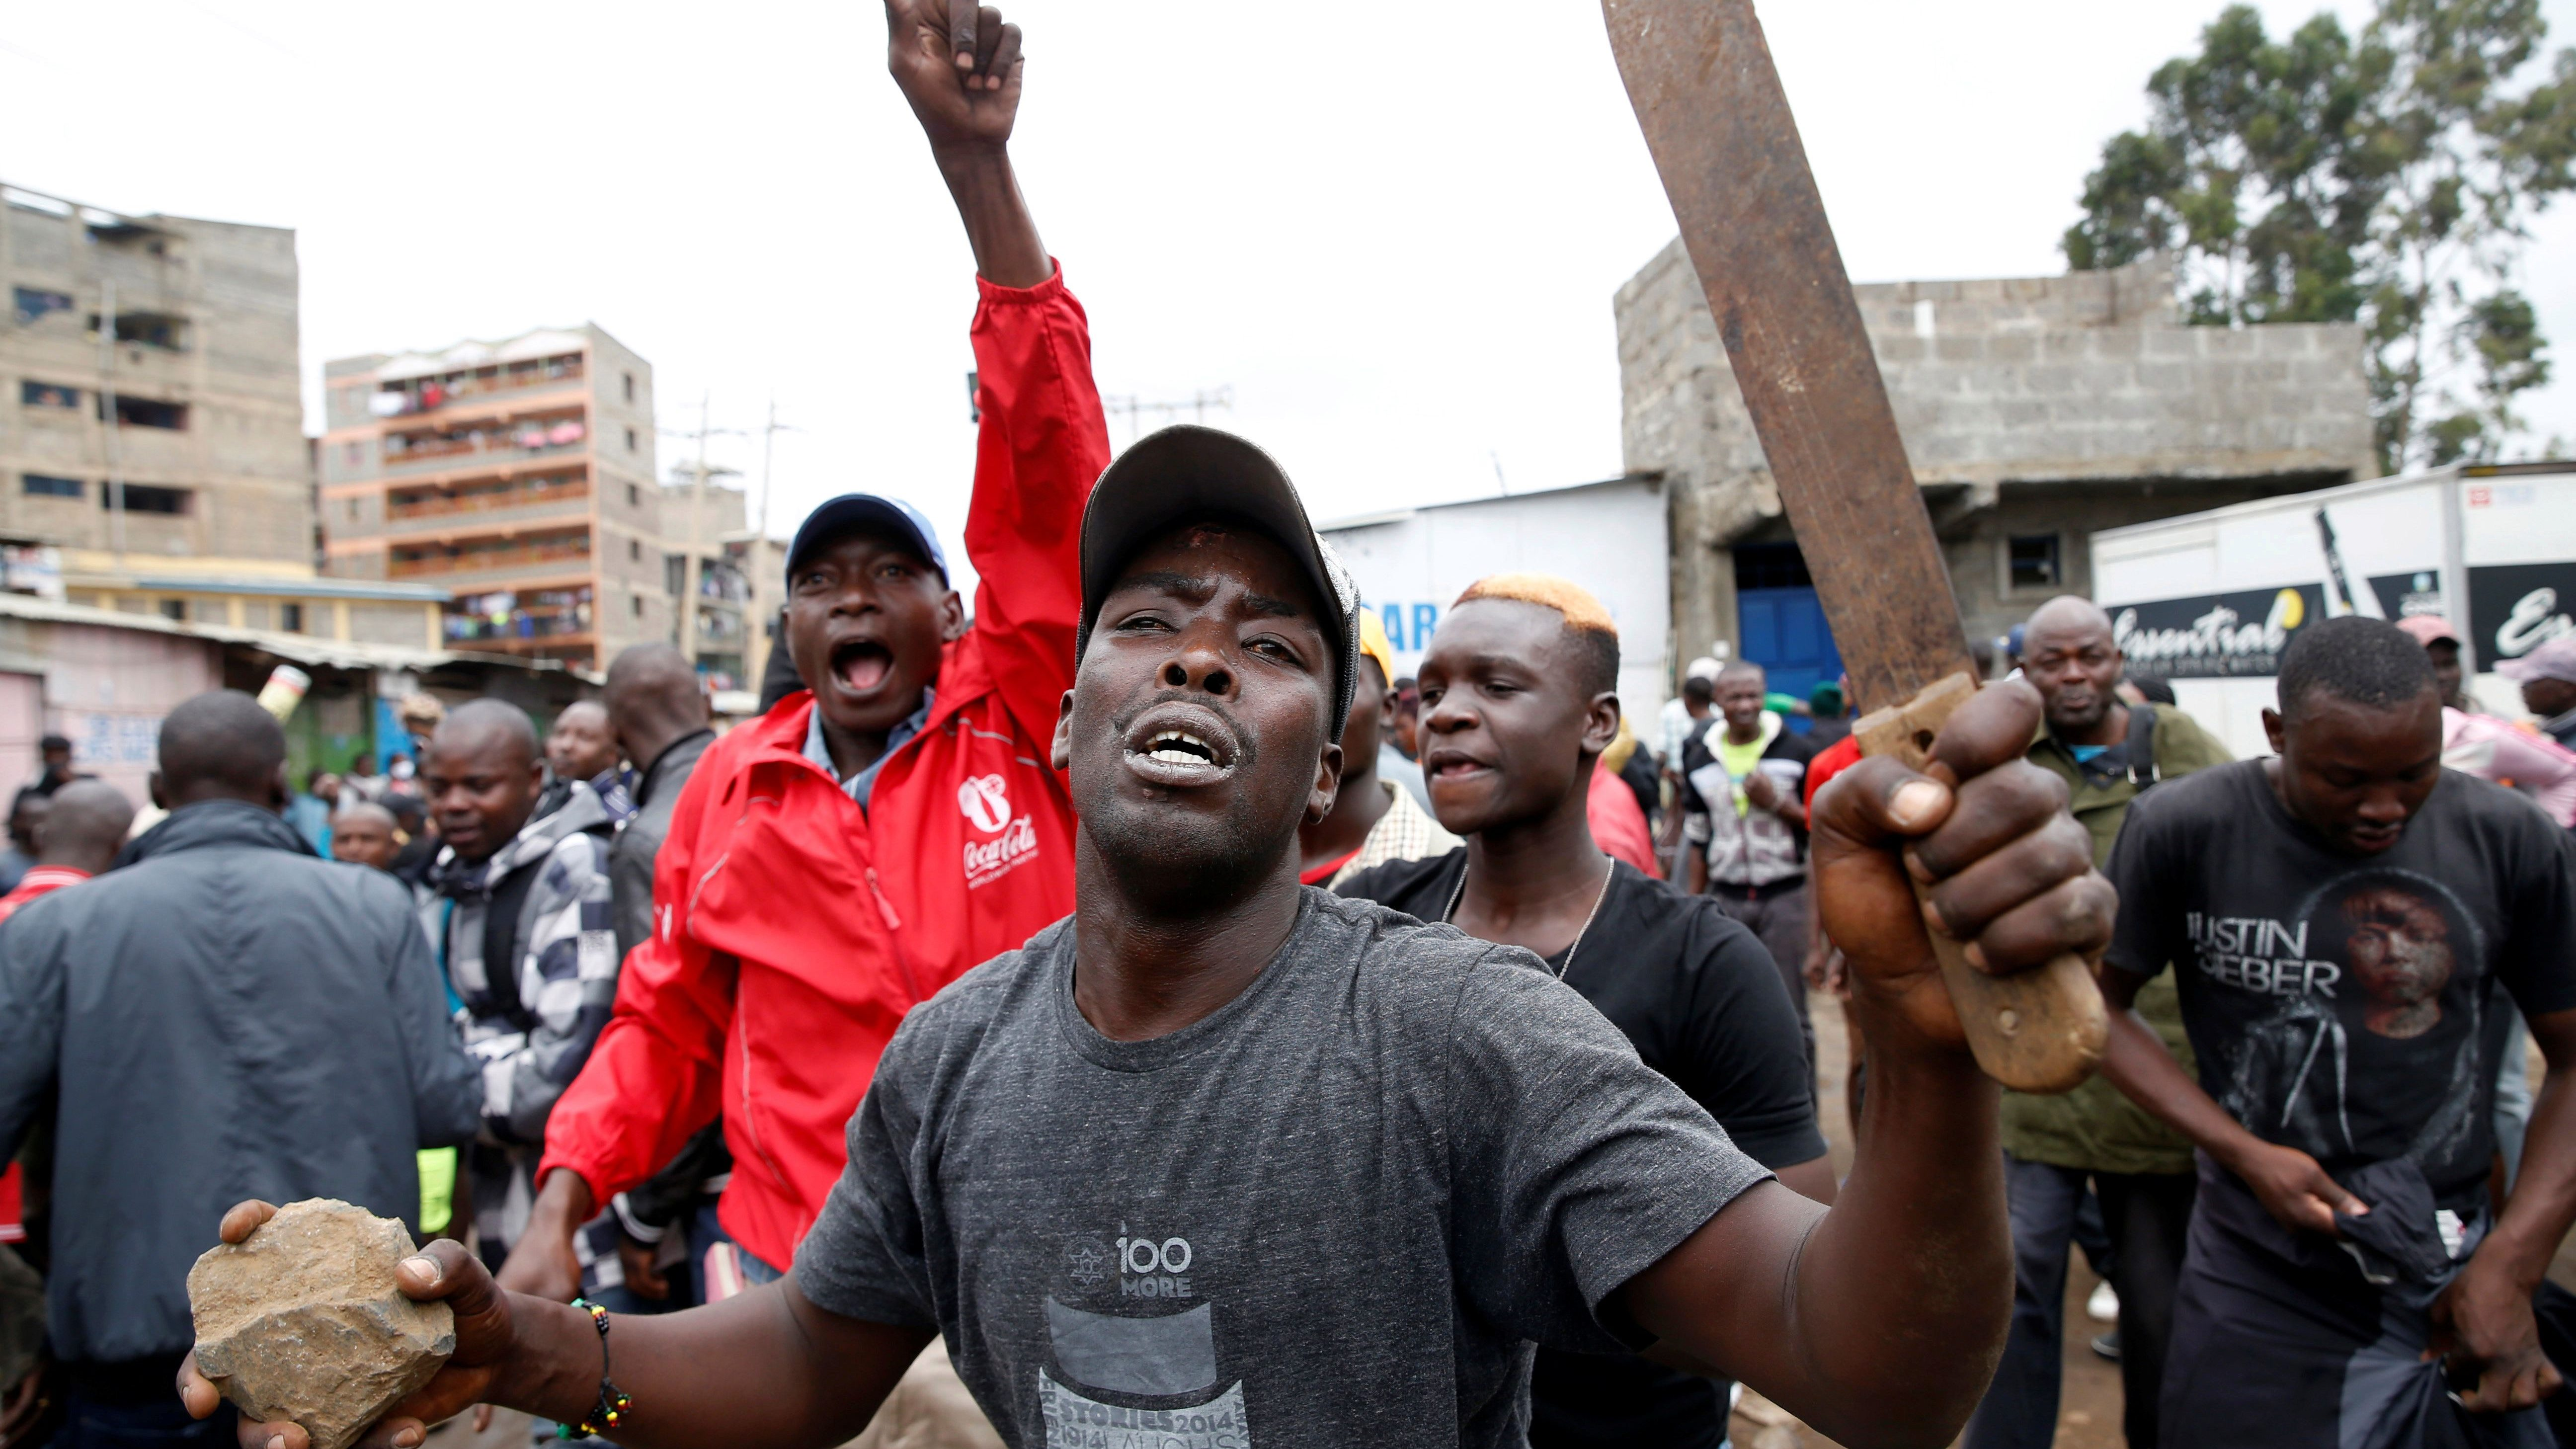 Supporters of of Kenyan opposition National Super Alliance (NASA) coalition react during clashes with anti-riot police in the Baba Dogo neighborhood of Nairobi